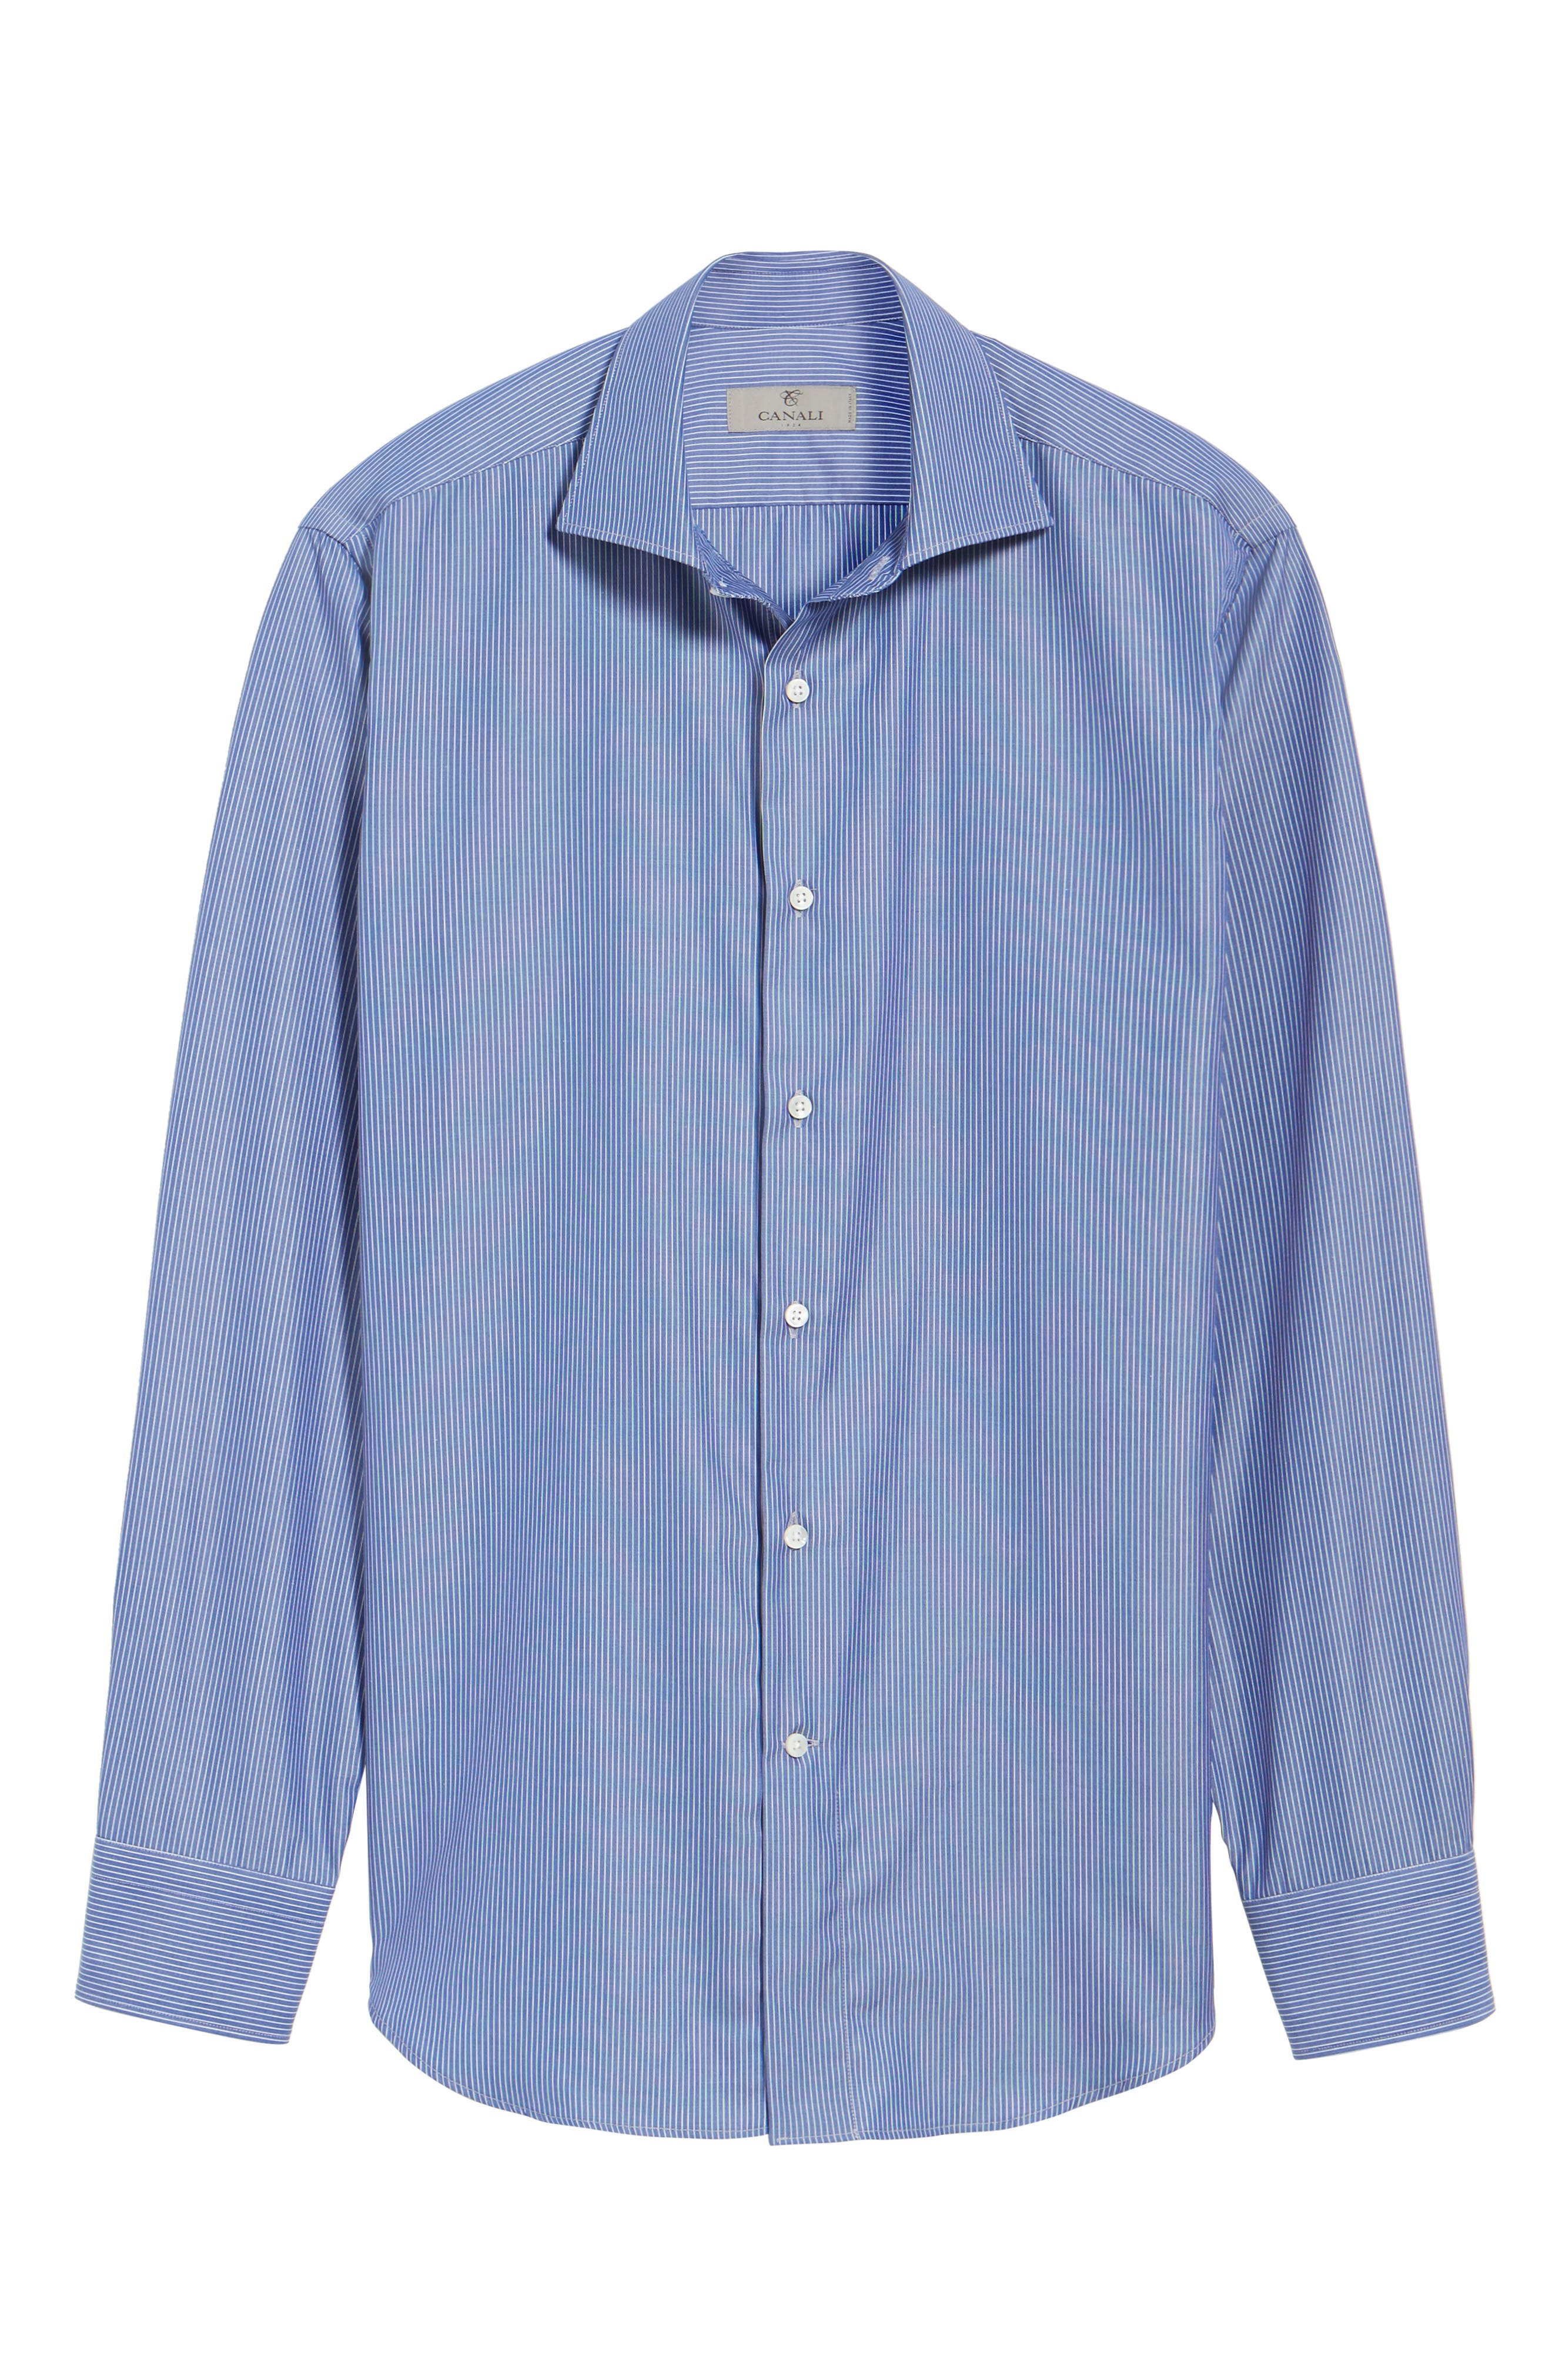 Regular Fit Stripe Dress Shirt,                             Alternate thumbnail 3, color,                             420